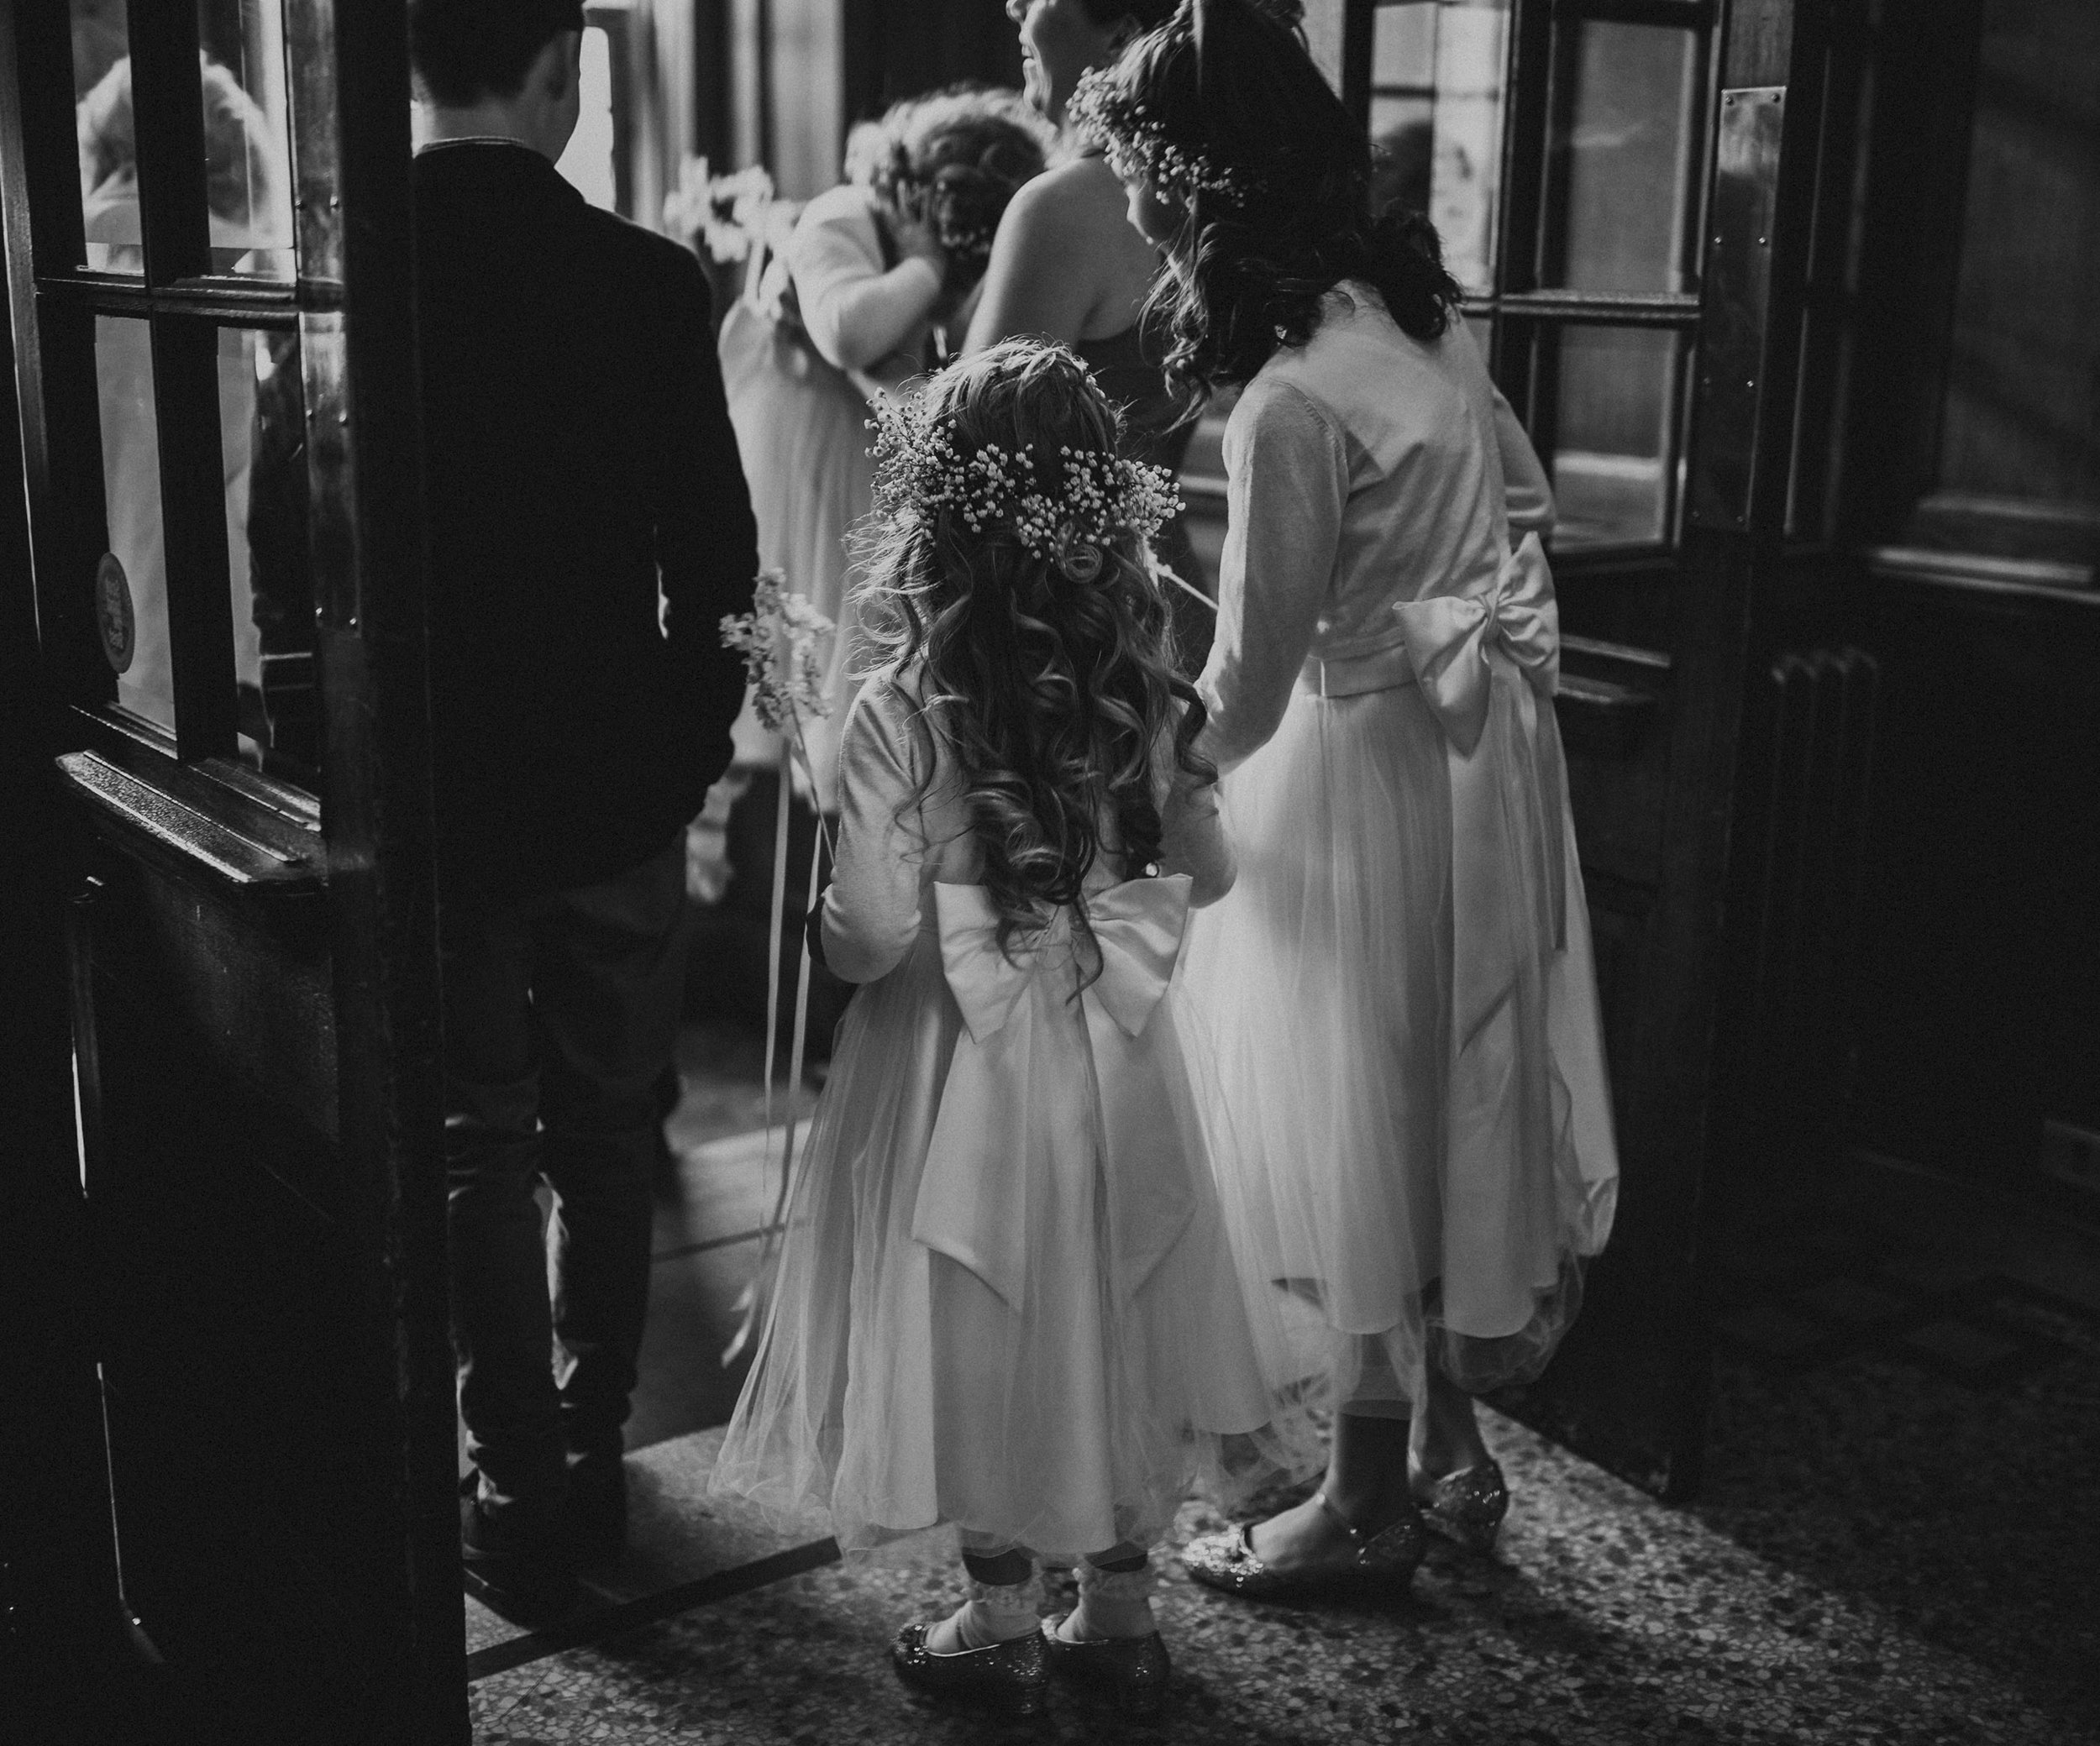 TIMBERYARD_EDINBURGH_WEDDING_PJ_PHILLIPS_PHOTOGRAPHY_103.jpg